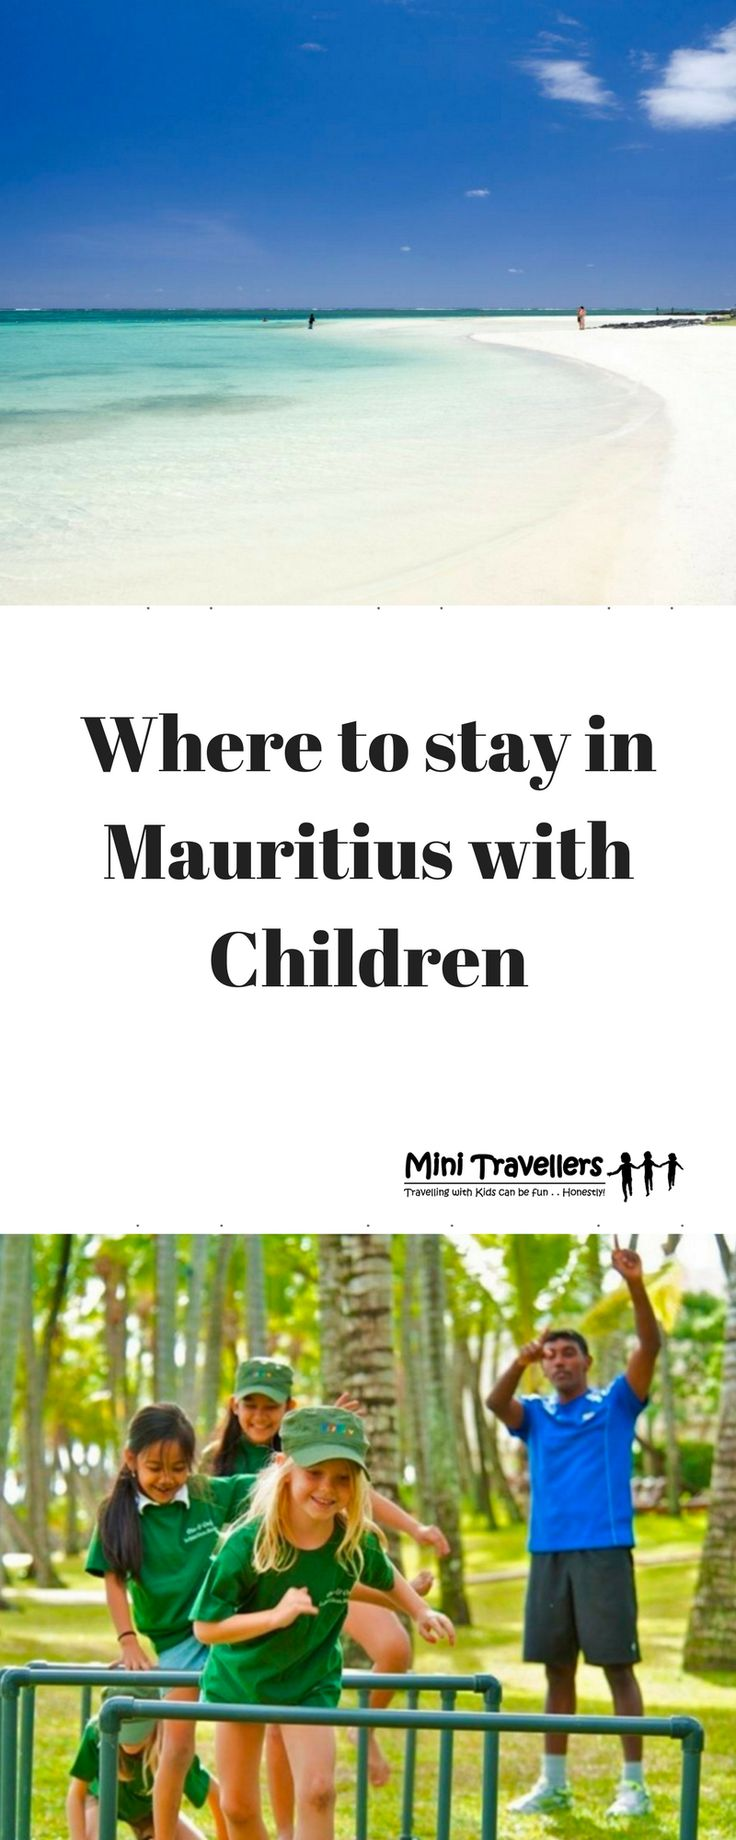 Where to stay in Mauritius with Children www.minitravellers.co.uk If you're reading this post it may be because you have decided to go to Mauritius and are just wondering where to stay in Mauritius with Children; but it's more likely that you're sat at your desk, or on your couch wondering whether Mauritius is a sensible option with children, and if so, what would you do and where would you stay!